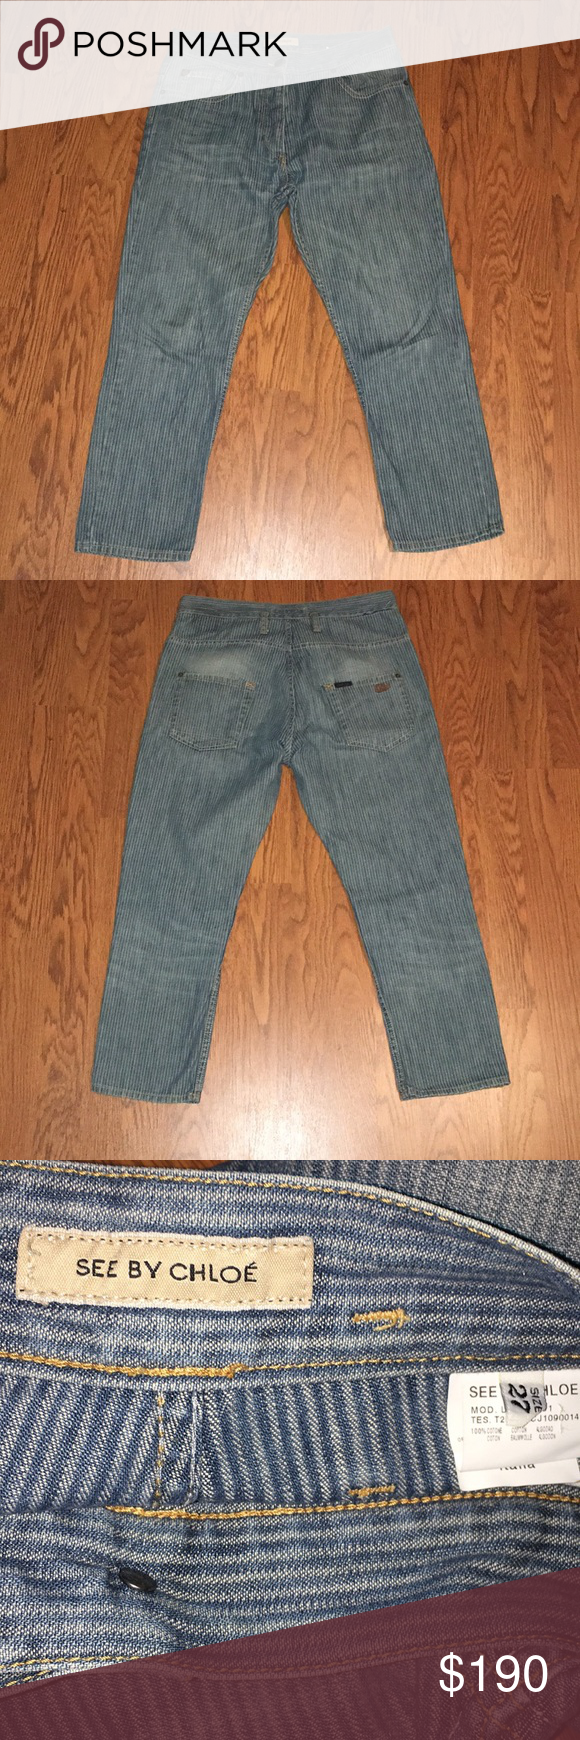 """EUC High-waisted See by Chloe boyfriend jeans Very flattering high-waisted See by Chloe boyfriend jeans, in excellent condition. Size 27 inseam 23"""" See By Chloe Jeans Boyfriend #seebychloe EUC High-waisted See by Chloe boyfriend jeans Very flattering high-waisted See by Chloe boyfriend jeans, in excellent condition. Size 27 inseam 23"""" See By Chloe Jeans Boyfriend #seebychloe EUC High-waisted See by Chloe boyfriend jeans Very flattering high-waisted See by Chloe boyfriend jeans, in excellent #seebychloe"""